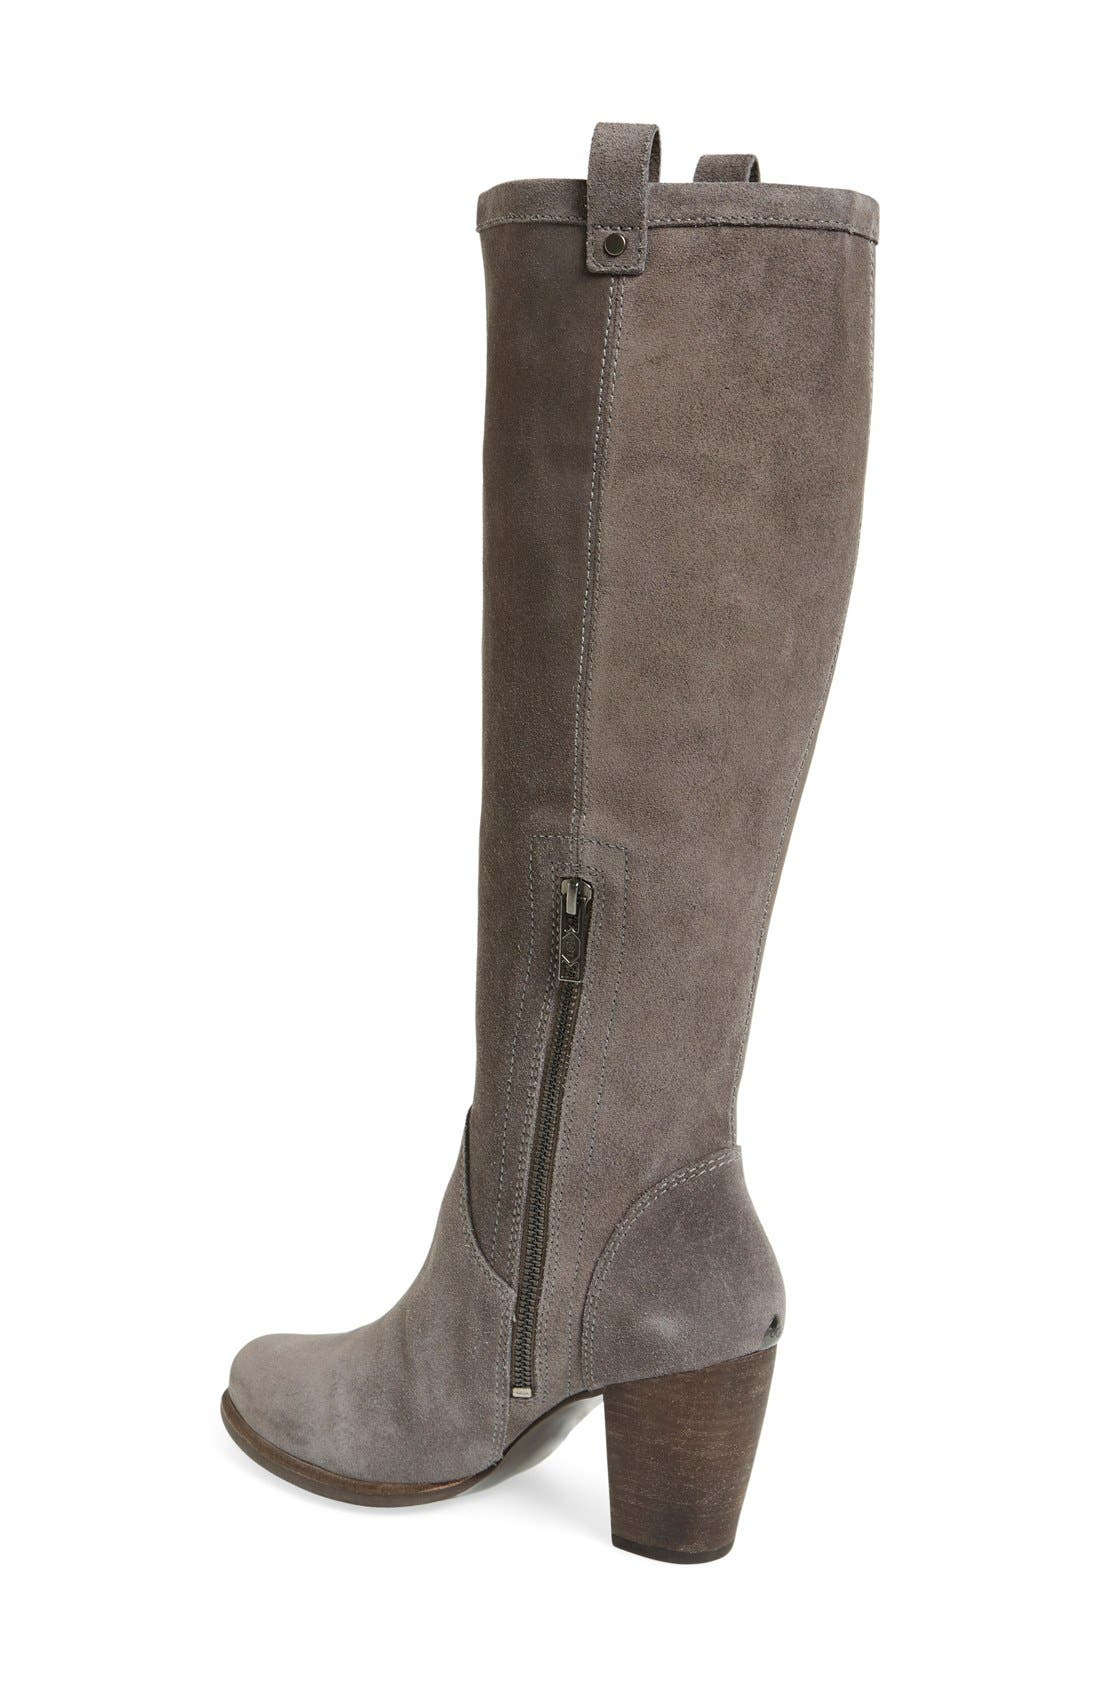 Alternate Image 2  - UGG® 'Ava' Tall Water Resistant Suede Boot (Women)